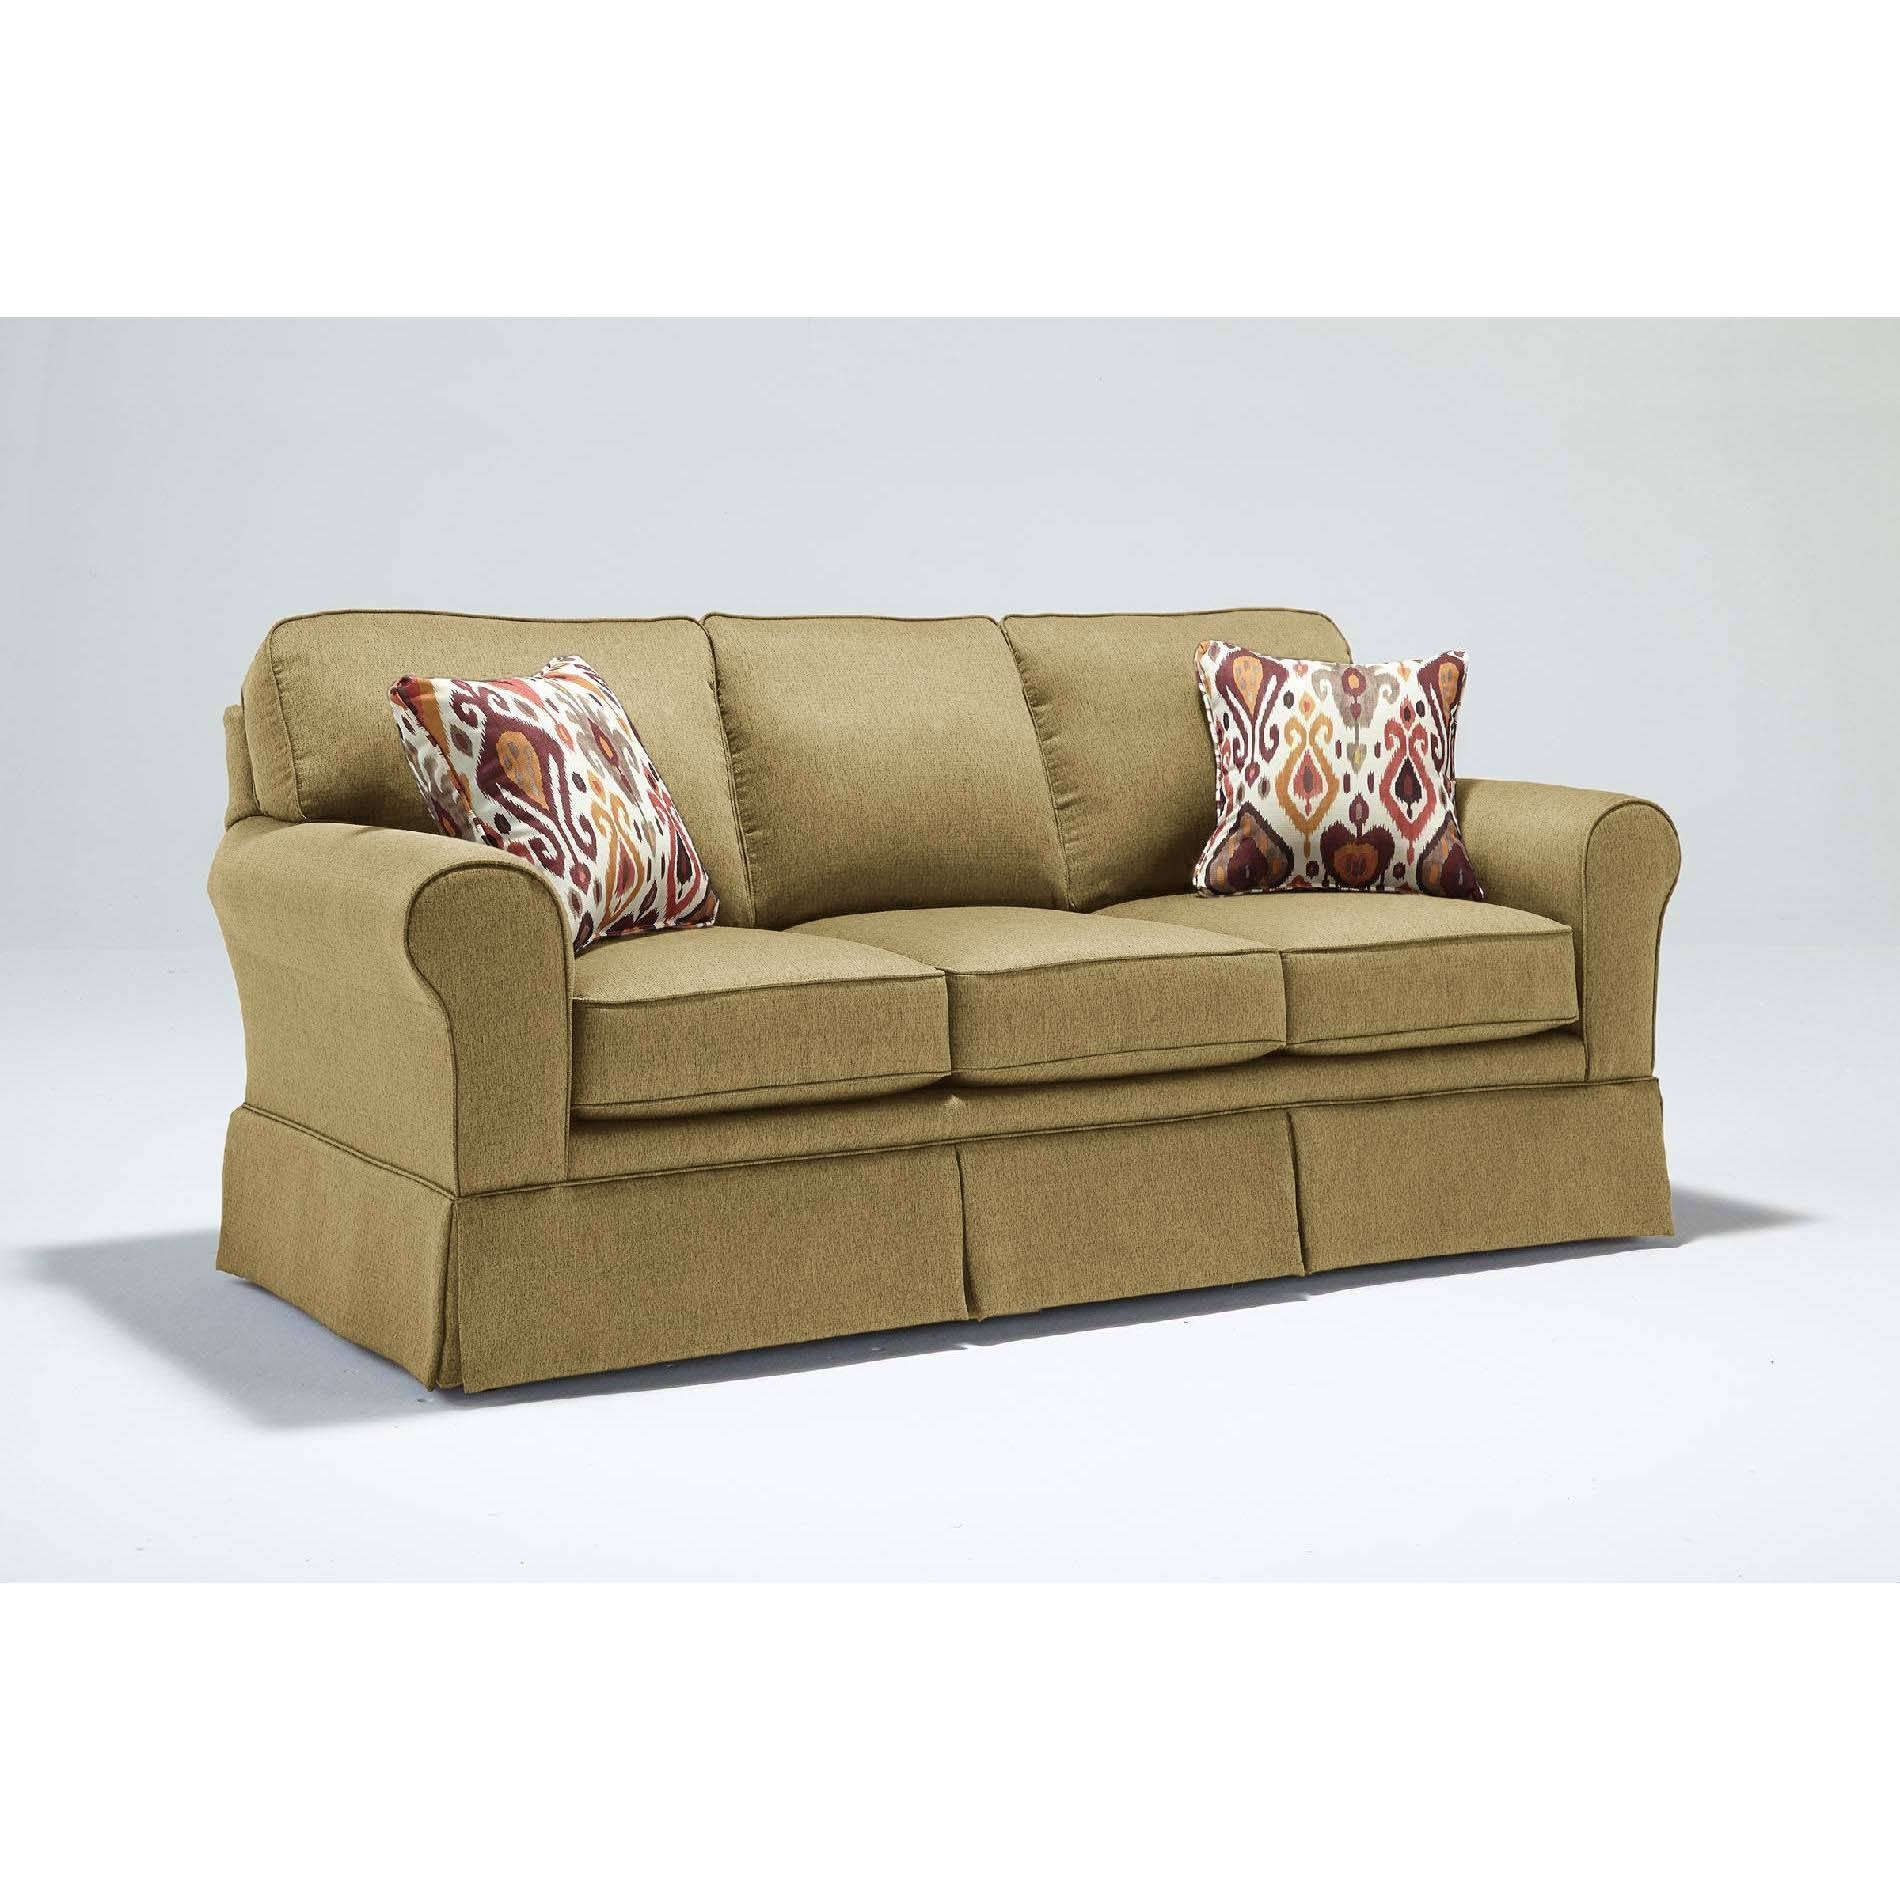 Furniture: Sears Canada Couches | Sears Couch | Sectional Sofa throughout Sears Sofa (Image 12 of 25)